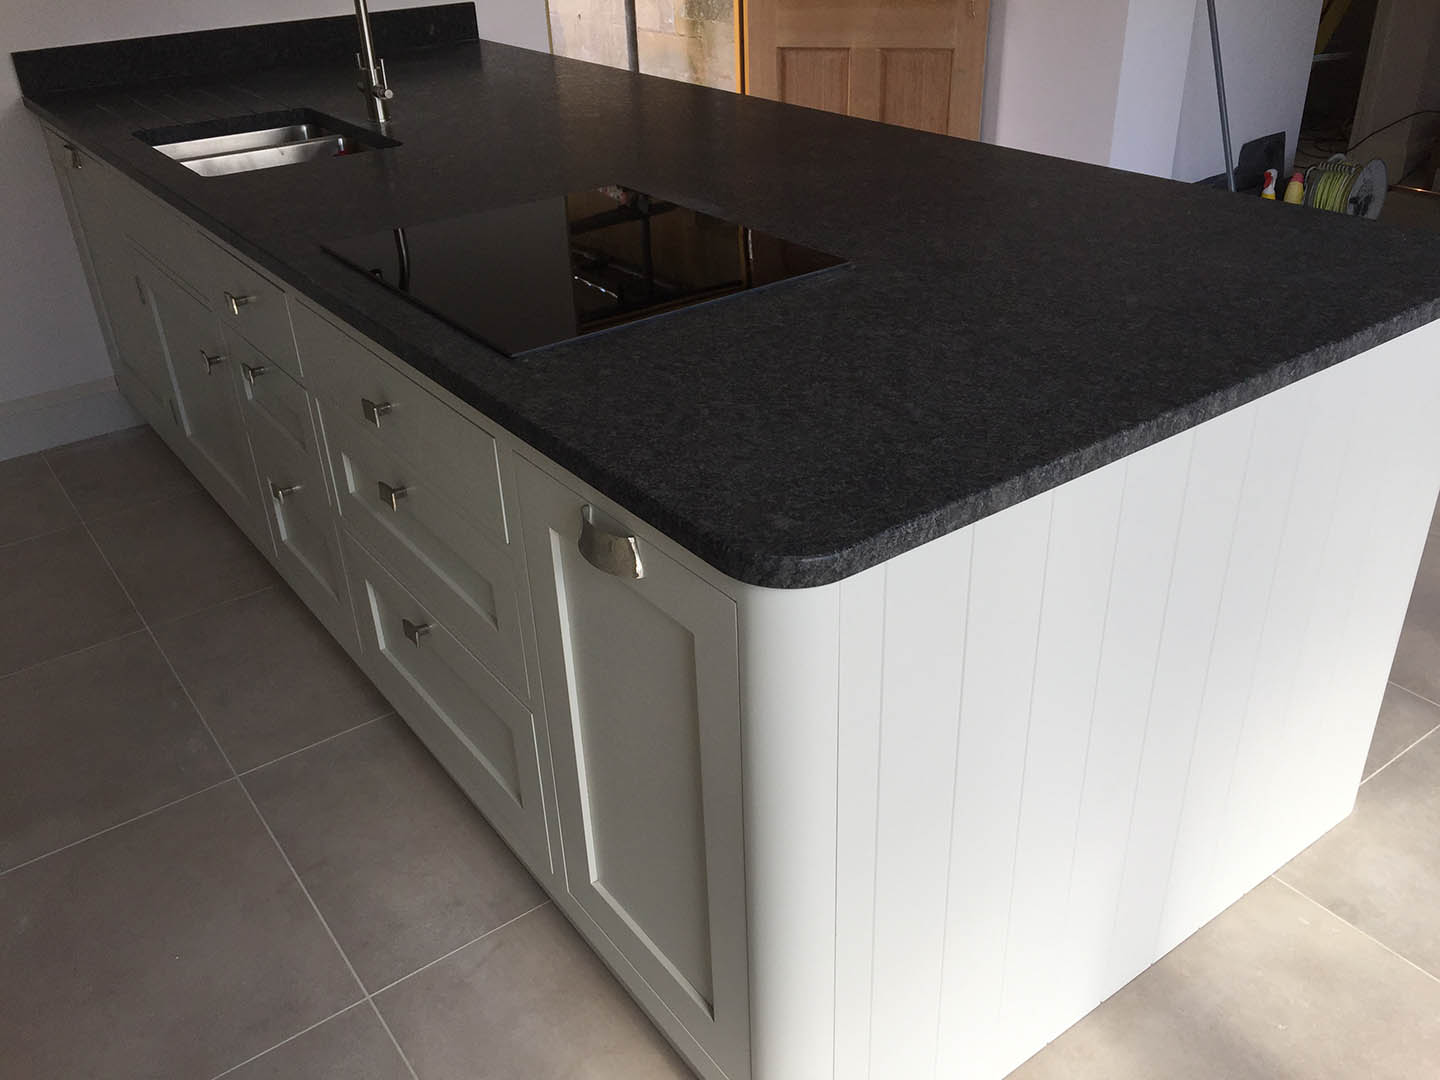 A cooking hob on top of a granite topped surface.